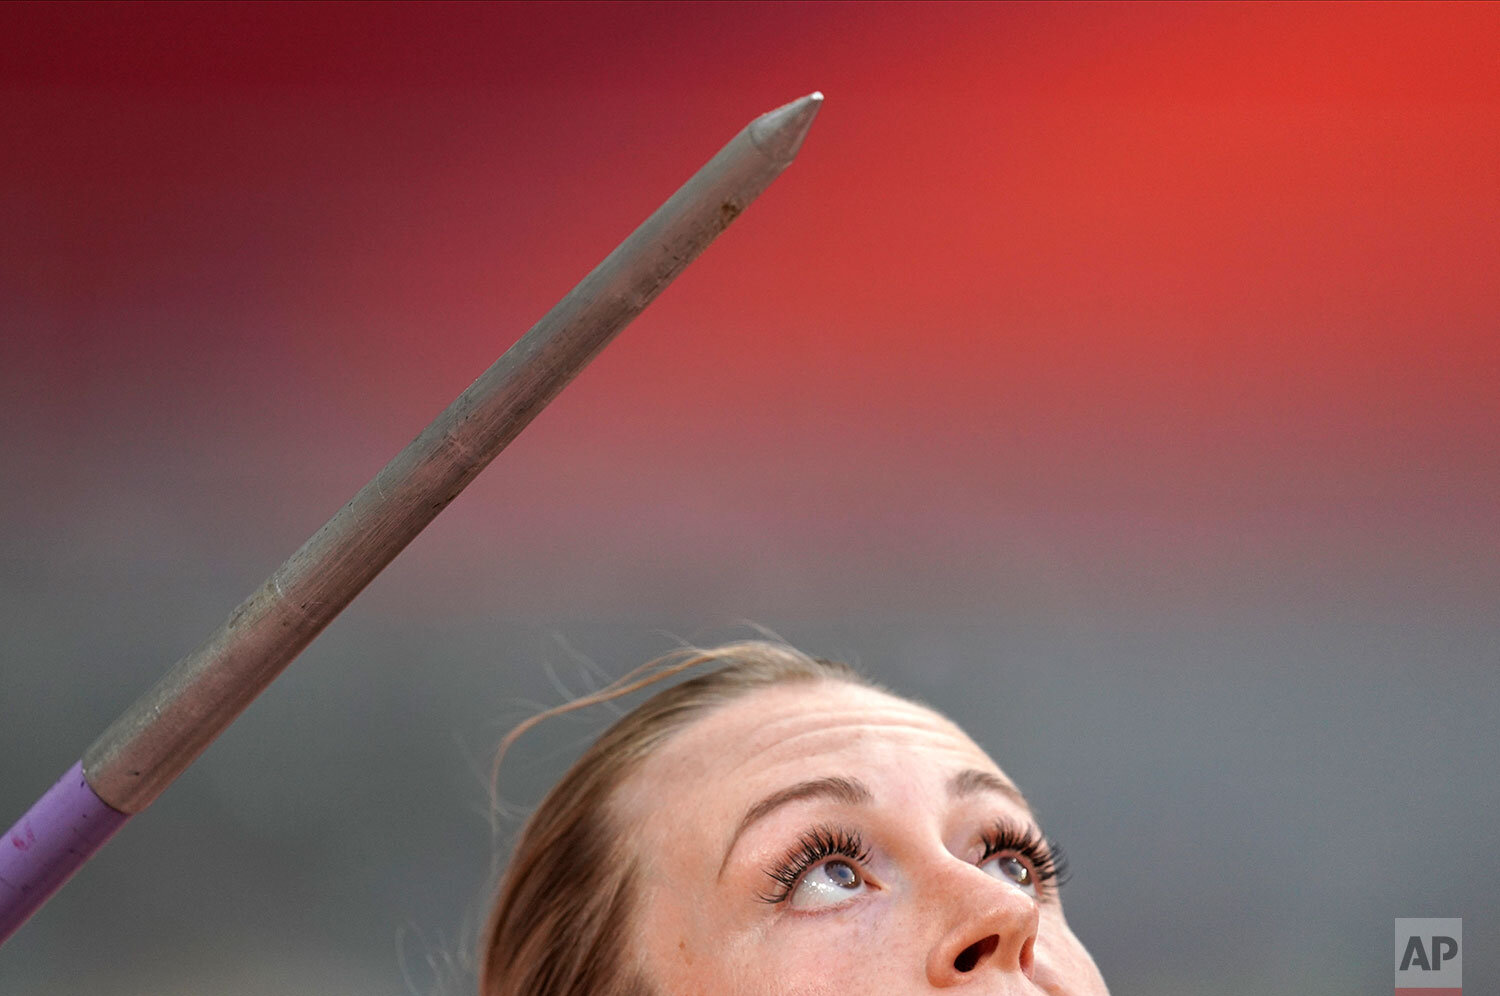 Elizabeth Gleadle, of Canada, competes in the women's javelin throw at the World Athletics Championships in Doha, Qatar, Monday, Sept. 30, 2019. (AP Photo/David J. Phillip)